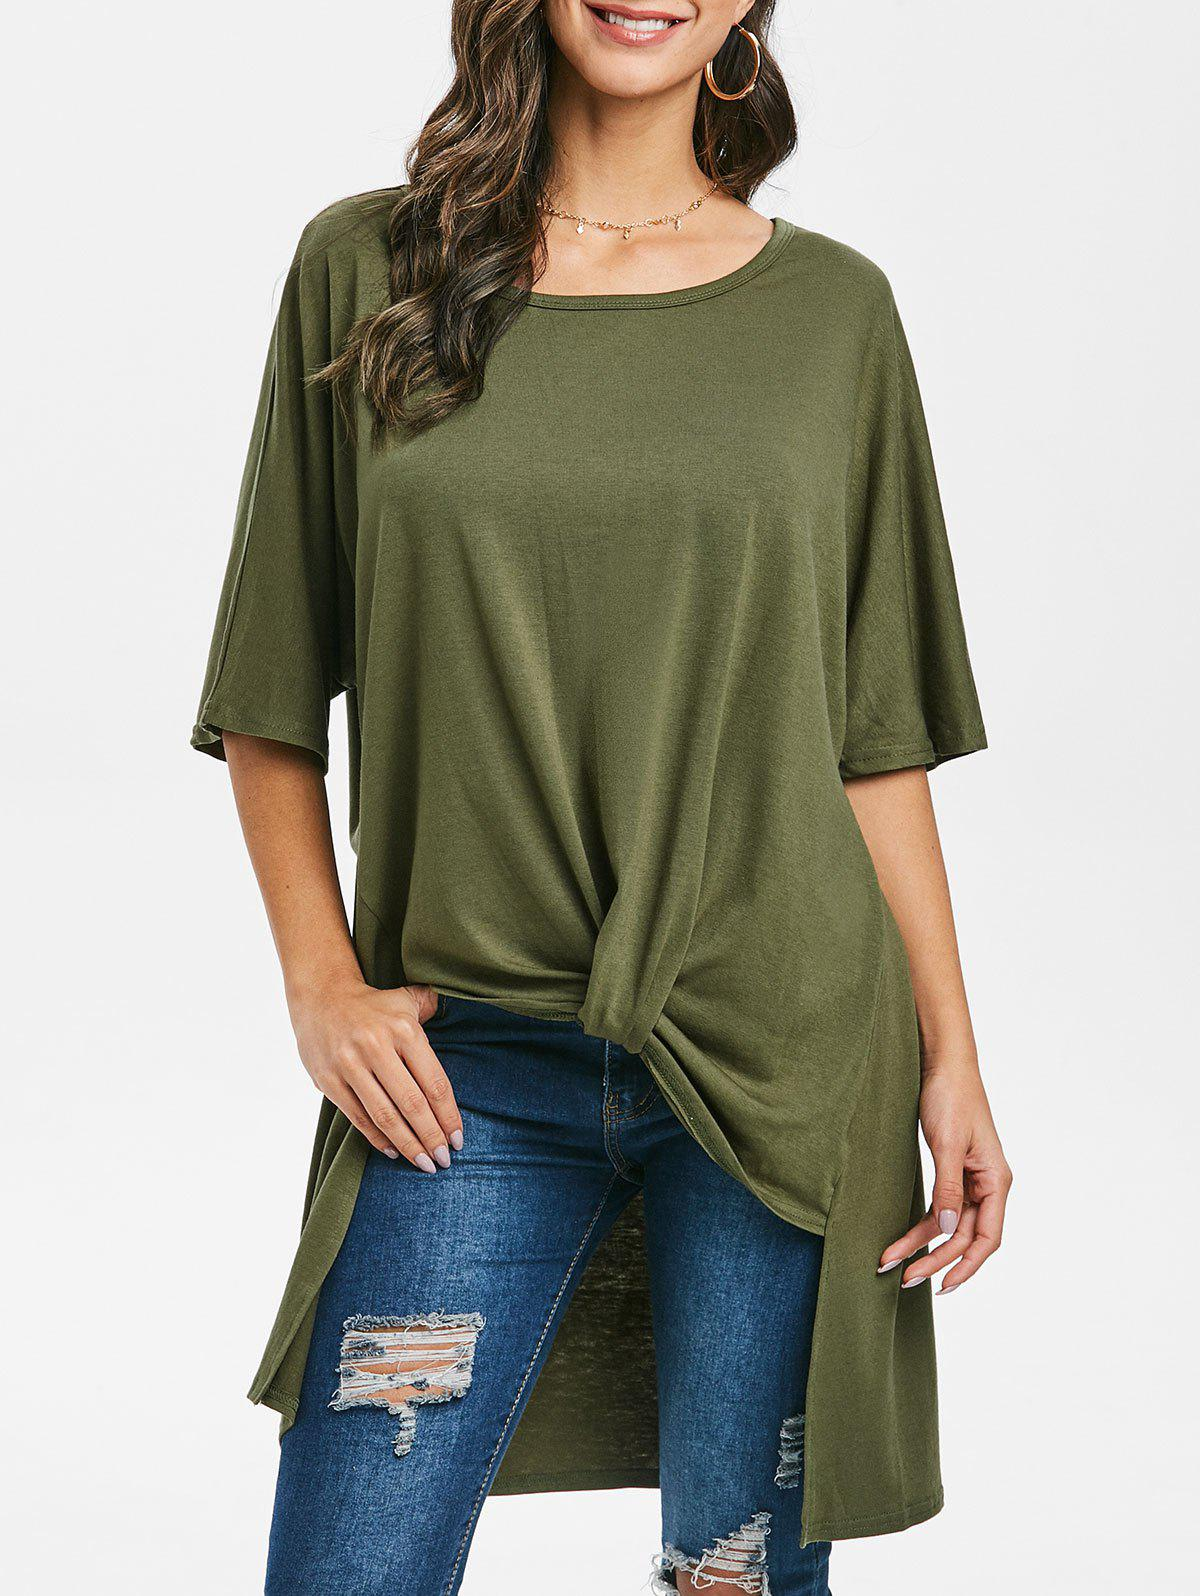 Batwing Sleeve Twisted High Low T-shirt - CAMOUFLAGE GREEN S